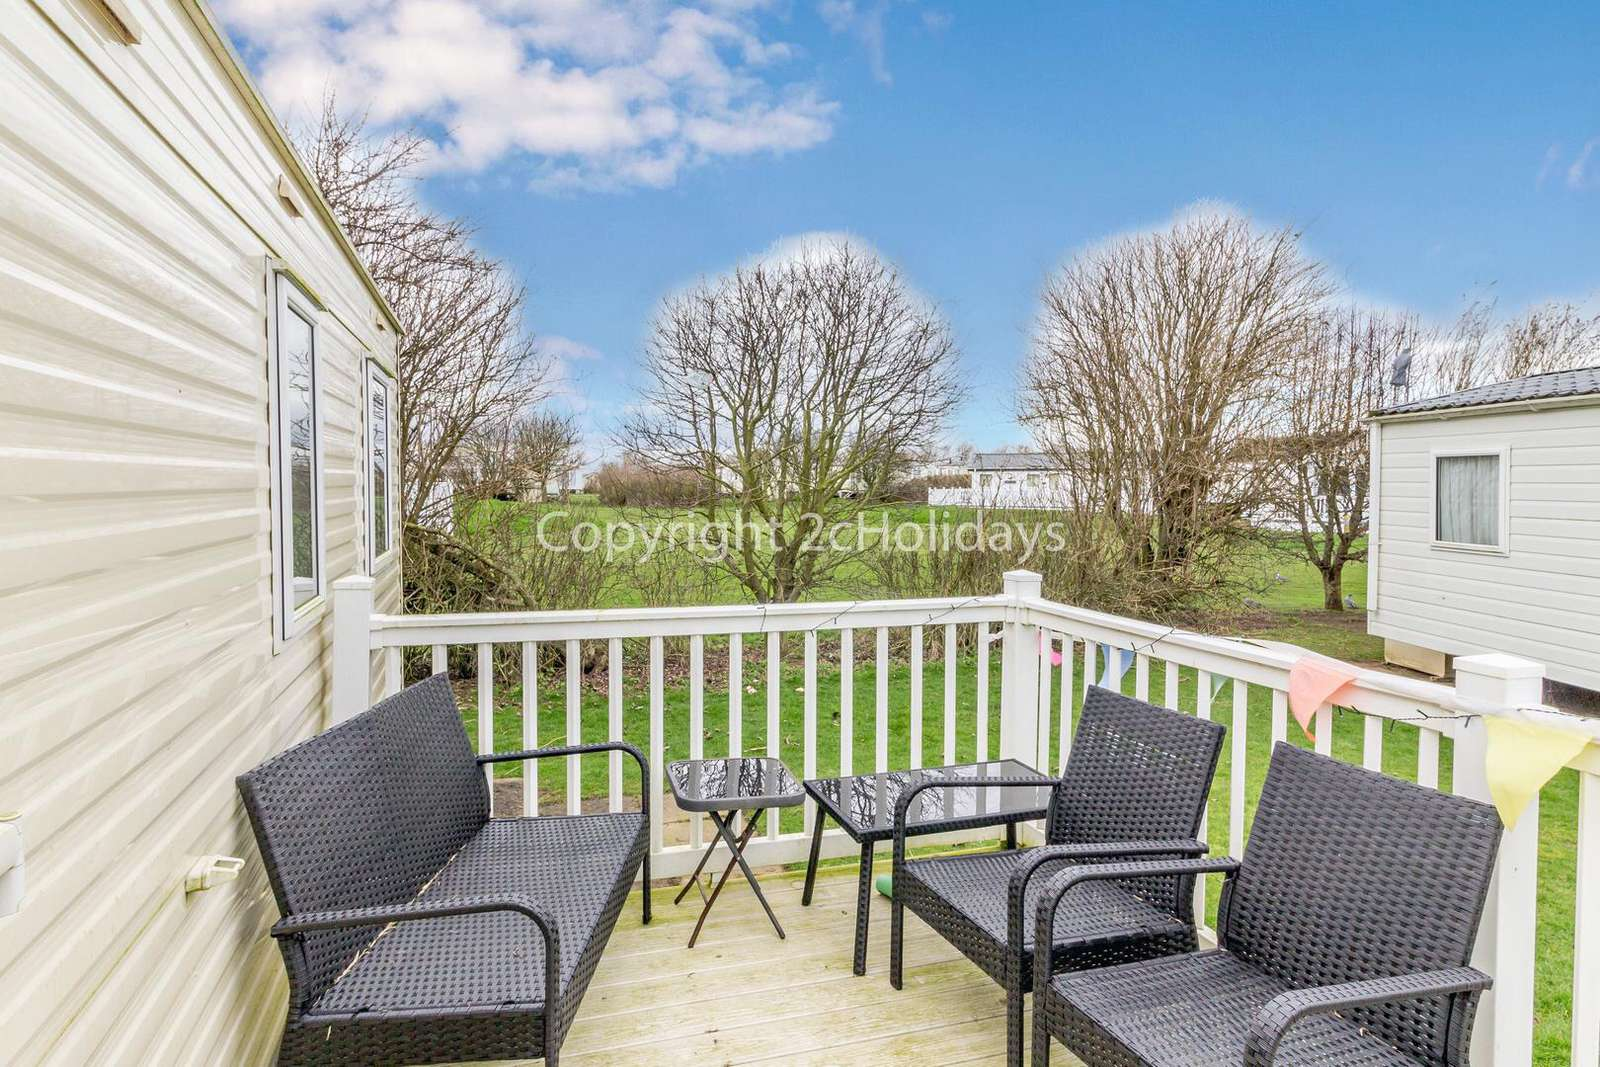 Enclosed decking with outdoor furniture for you to enjoy use of, perfect for families!